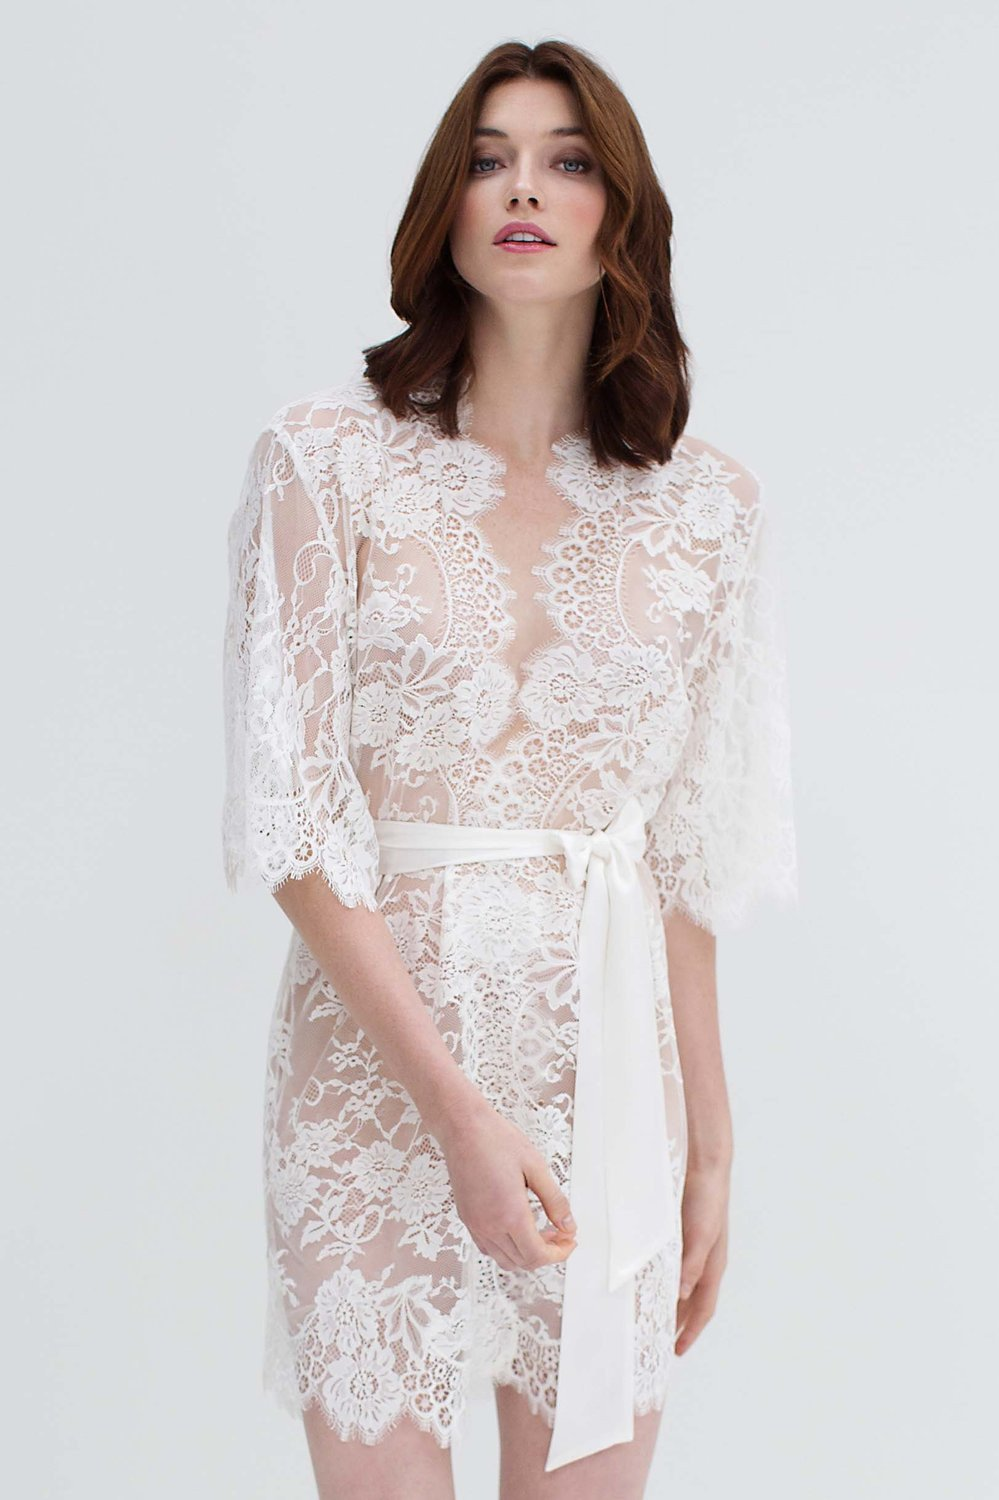 664223e07 ... Lace Kimono Bridal Robe - Lace Bridal Robes Sydney - The White  Collection ...